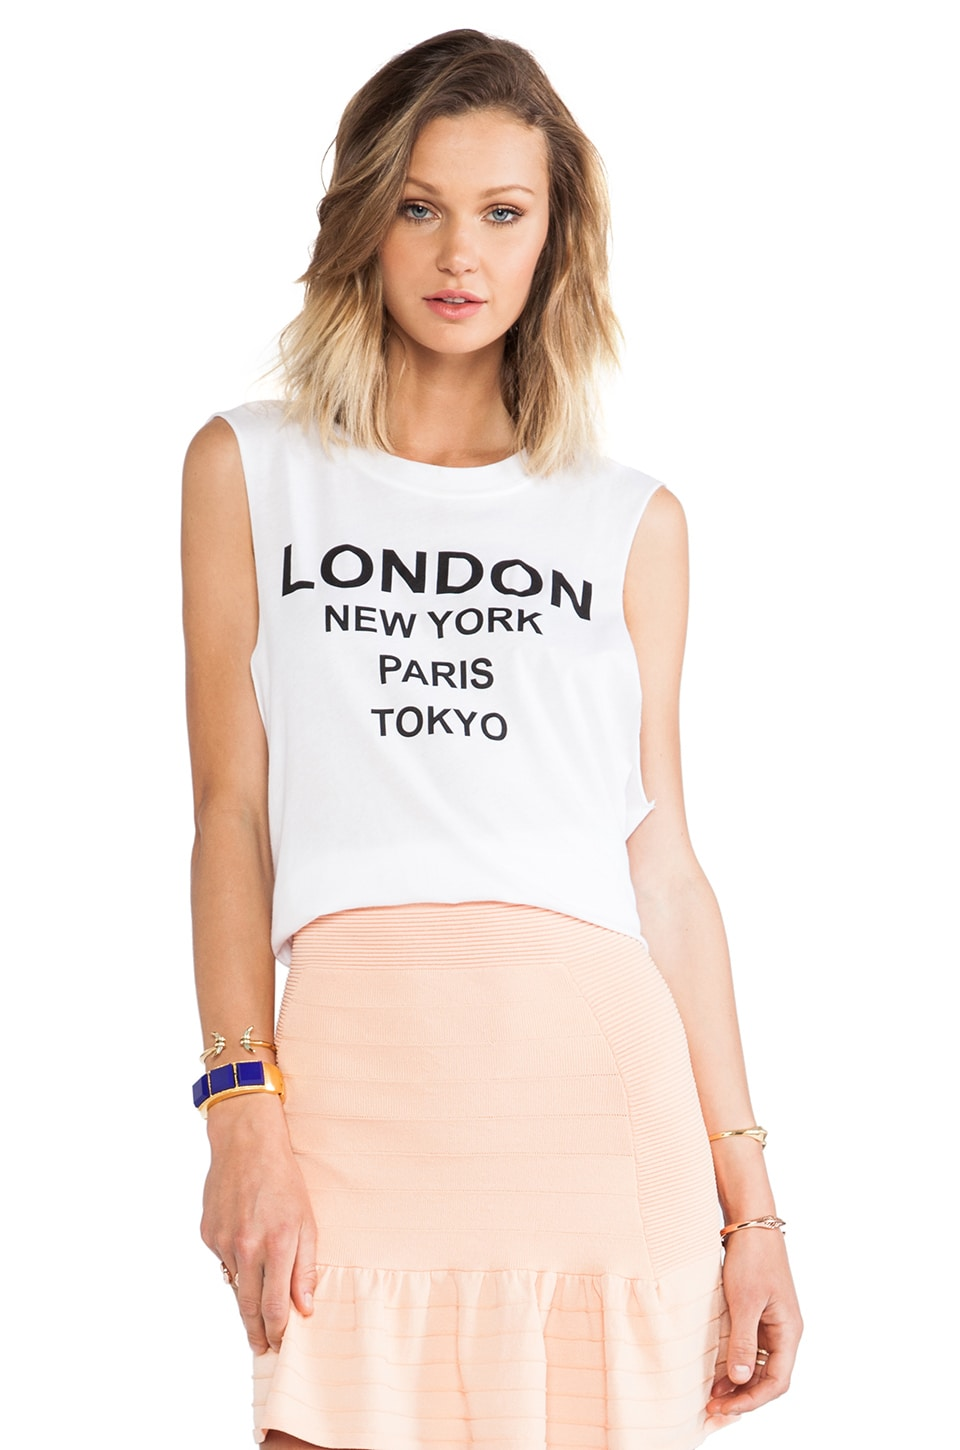 BLQ BASIQ London New York Muscle Tee in White